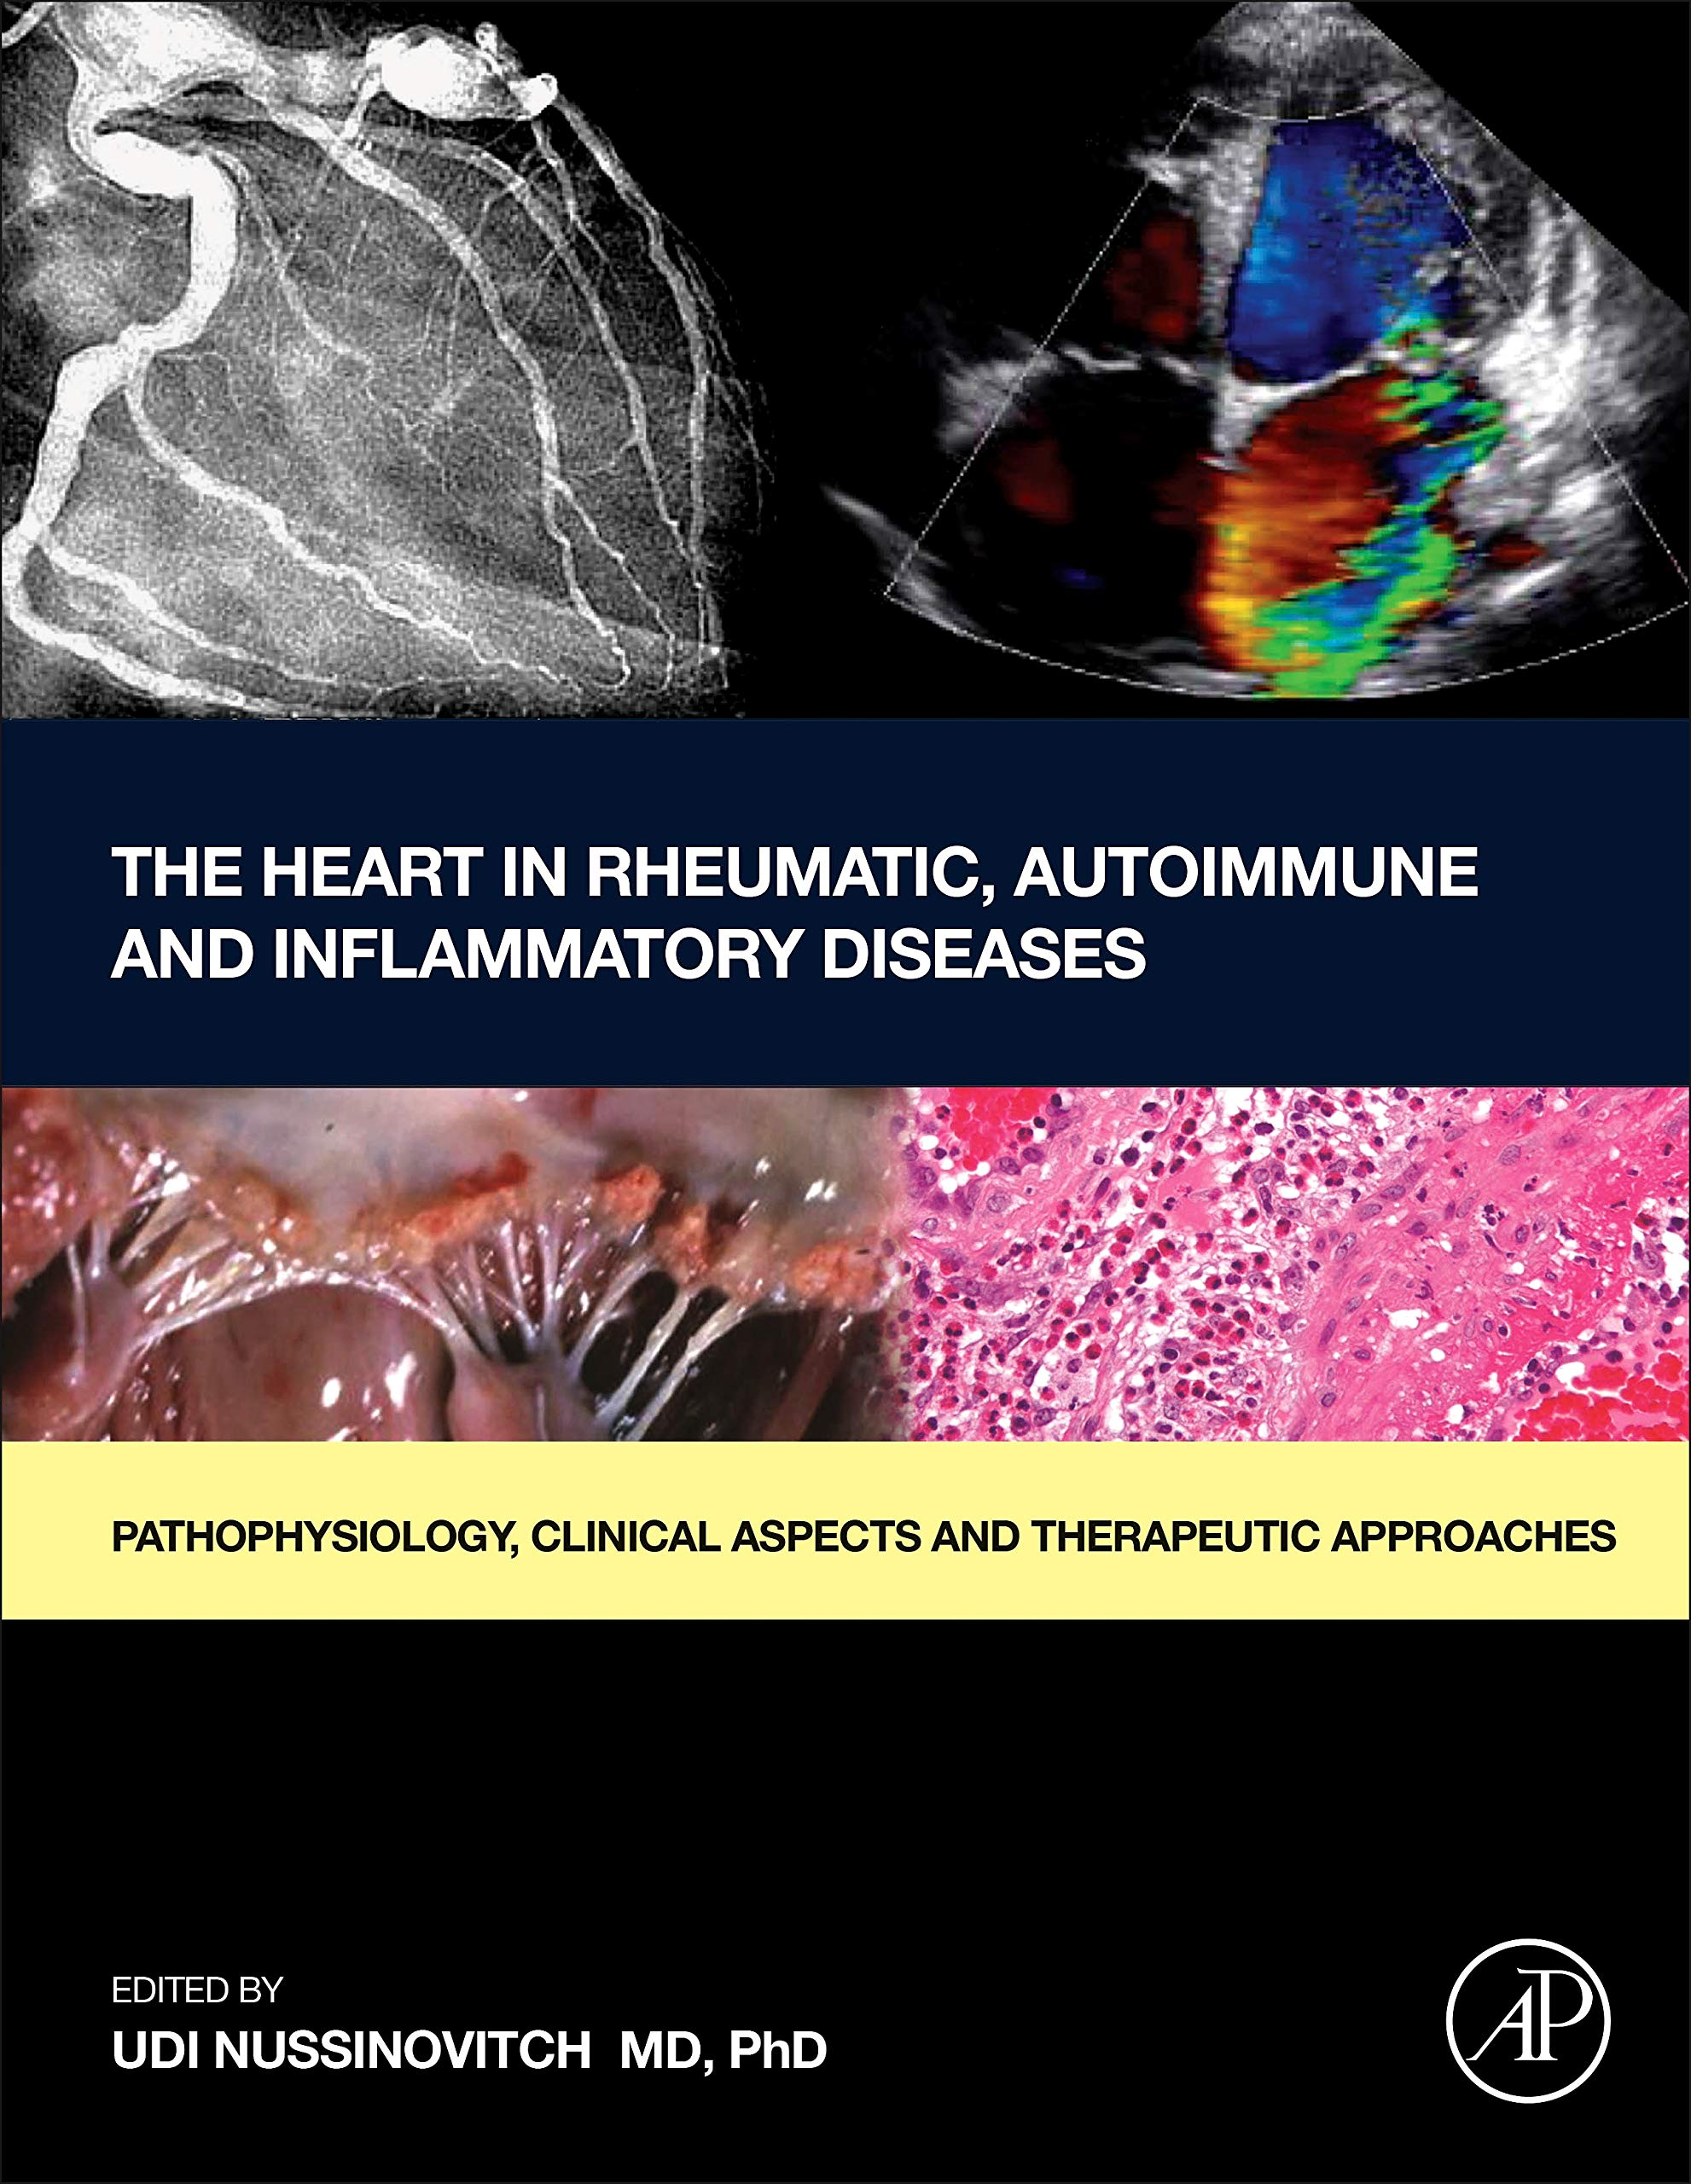 The Heart in Rheumatic, Autoimmune and Inflammatory Diseases: Pathophysiology, Clinical Aspects and Therapeutic Approaches by Academic Press